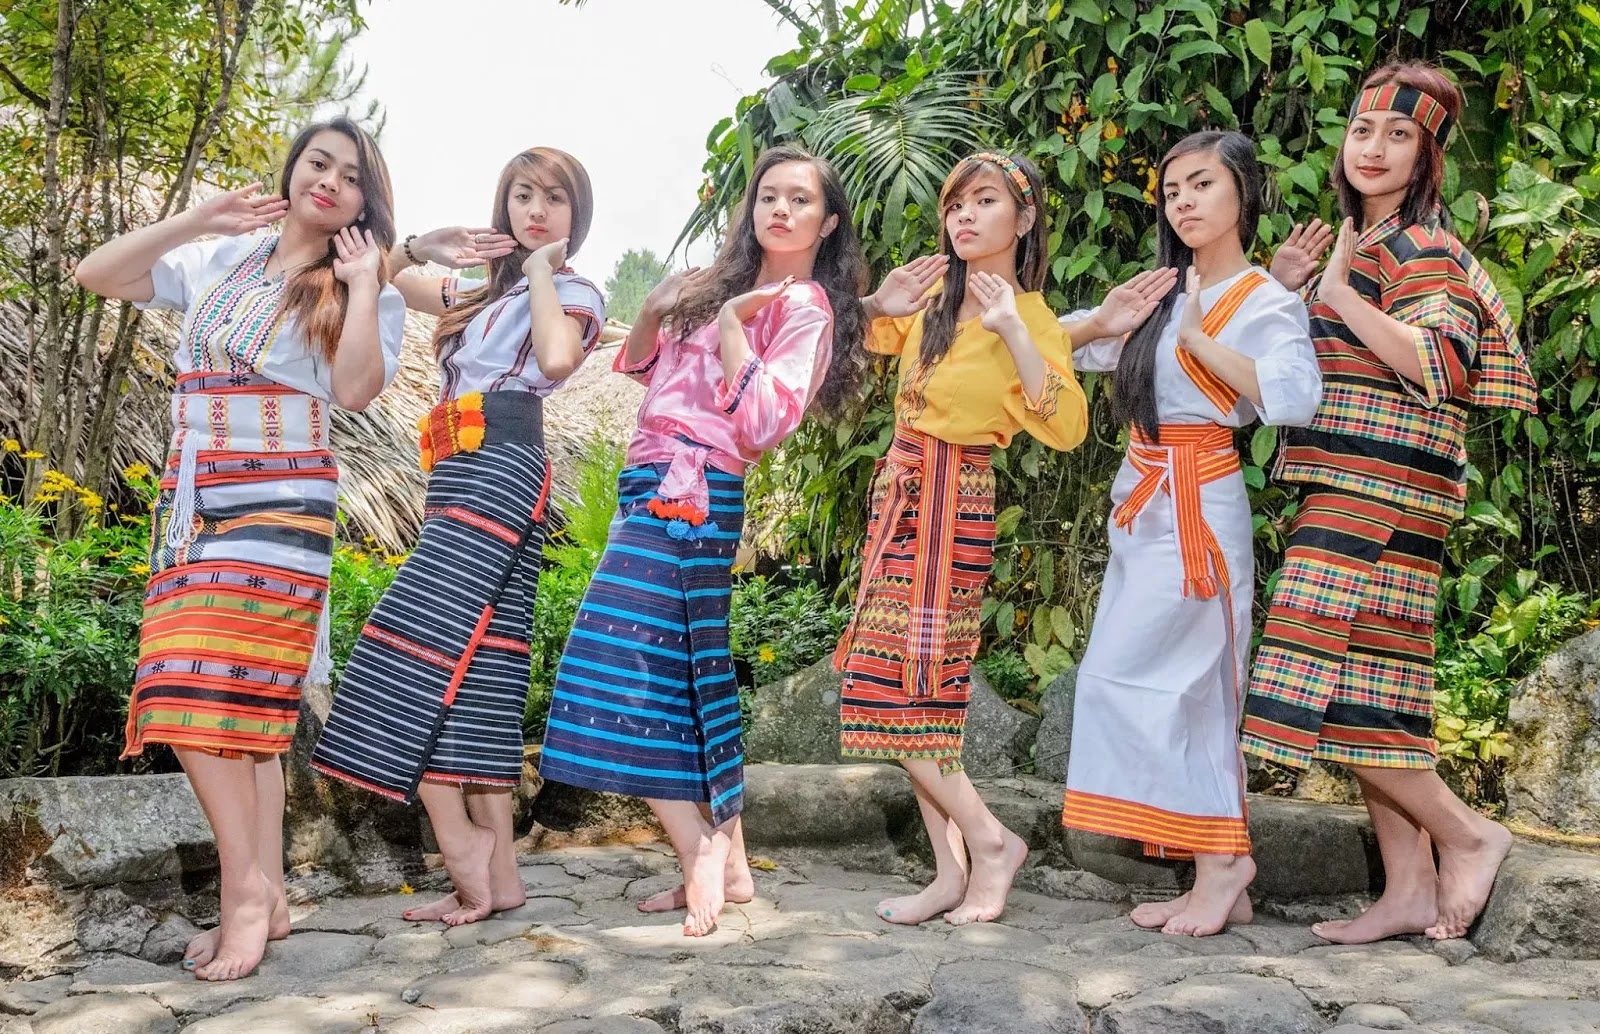 Tam-awan Baguio City Philippines The Colours of Cordillera Ethno-Indigenous Costumes